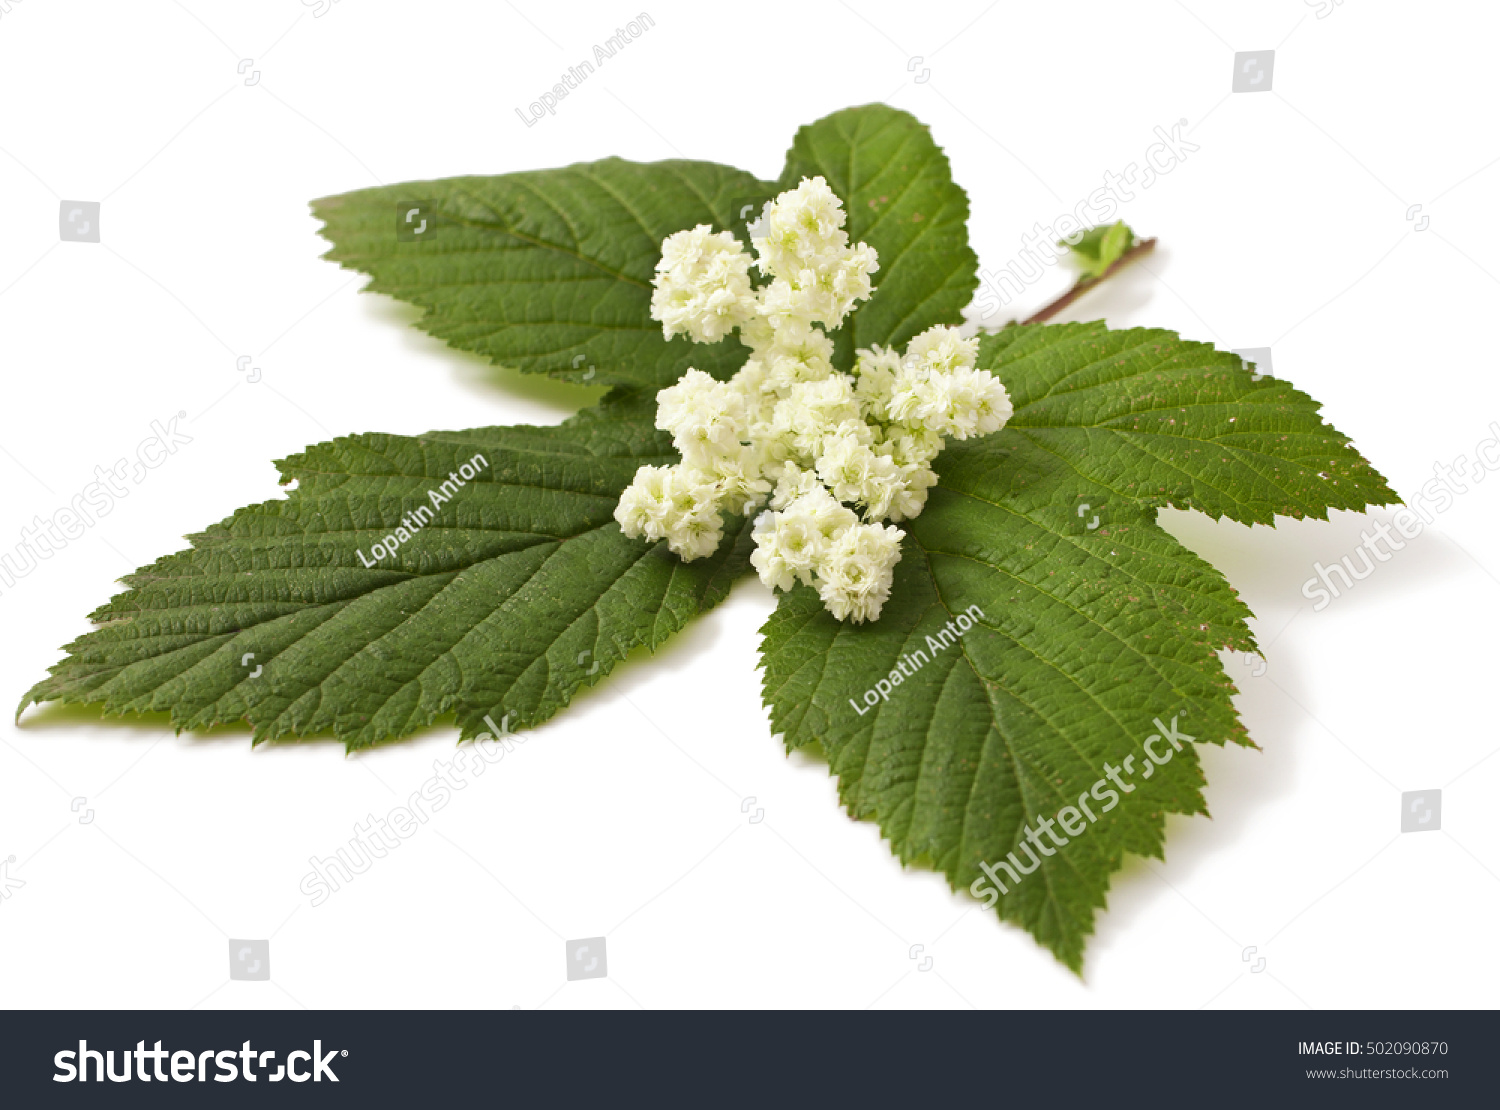 Meadowsweet: Pictures, Flowers, Leaves and Identification ...